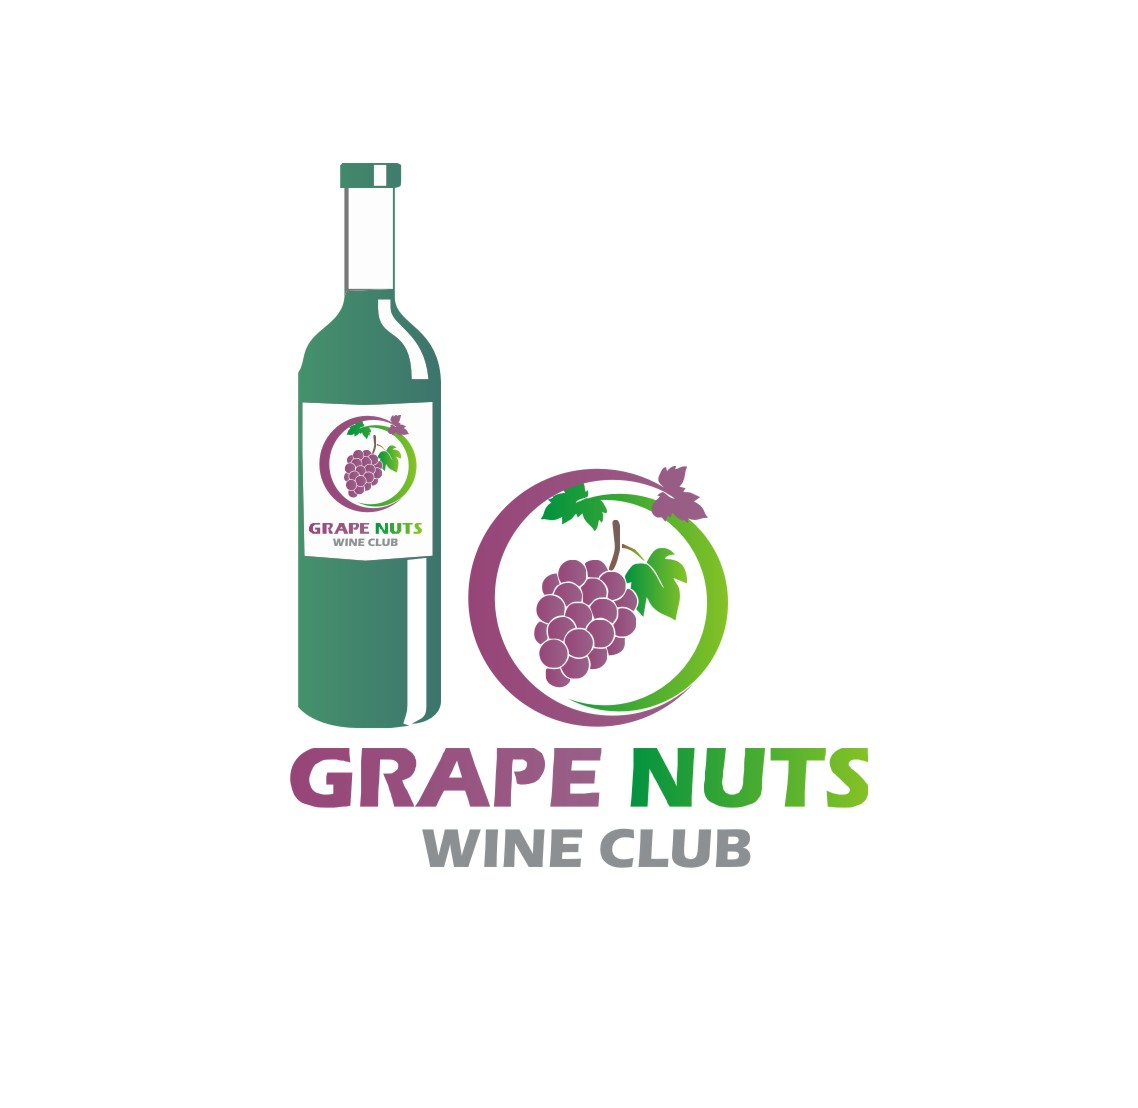 Logo Design by Yuda Hermawan - Entry No. 4 in the Logo Design Contest Artistic Logo Design for Grape Nuts Wine Club.